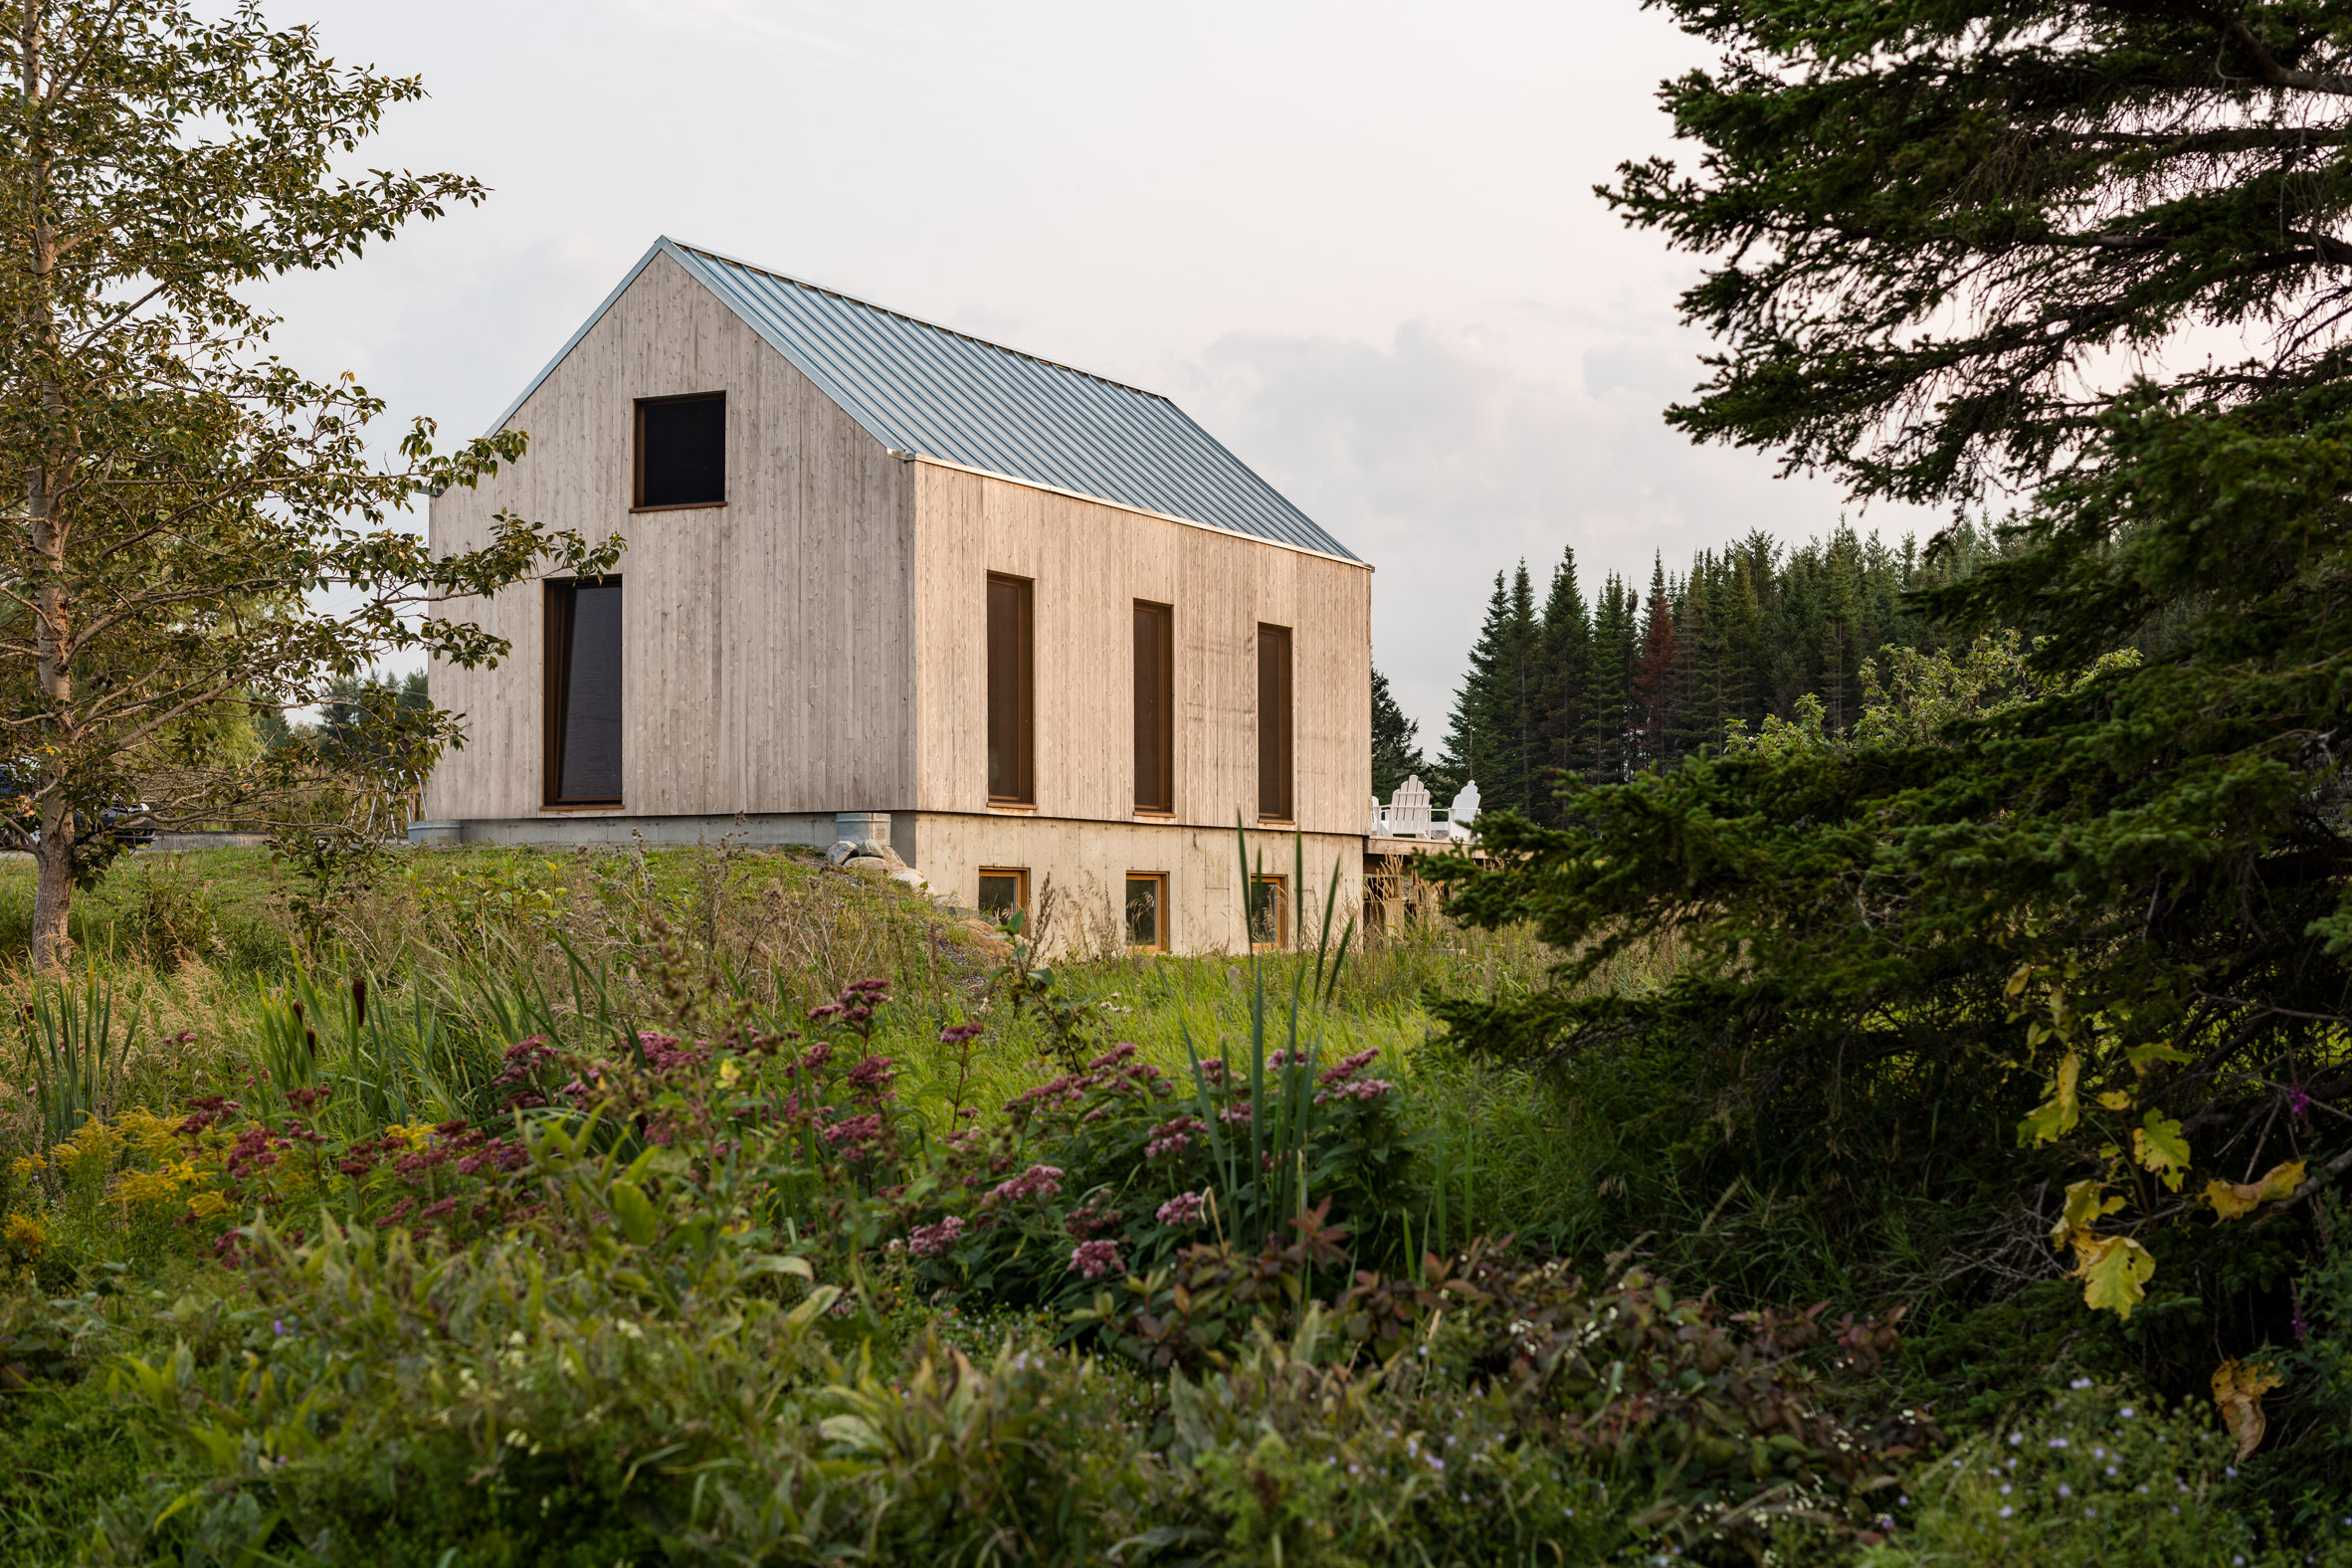 Atelier Pierre Thibault completes shed-like guesthouse in Quebec gardens